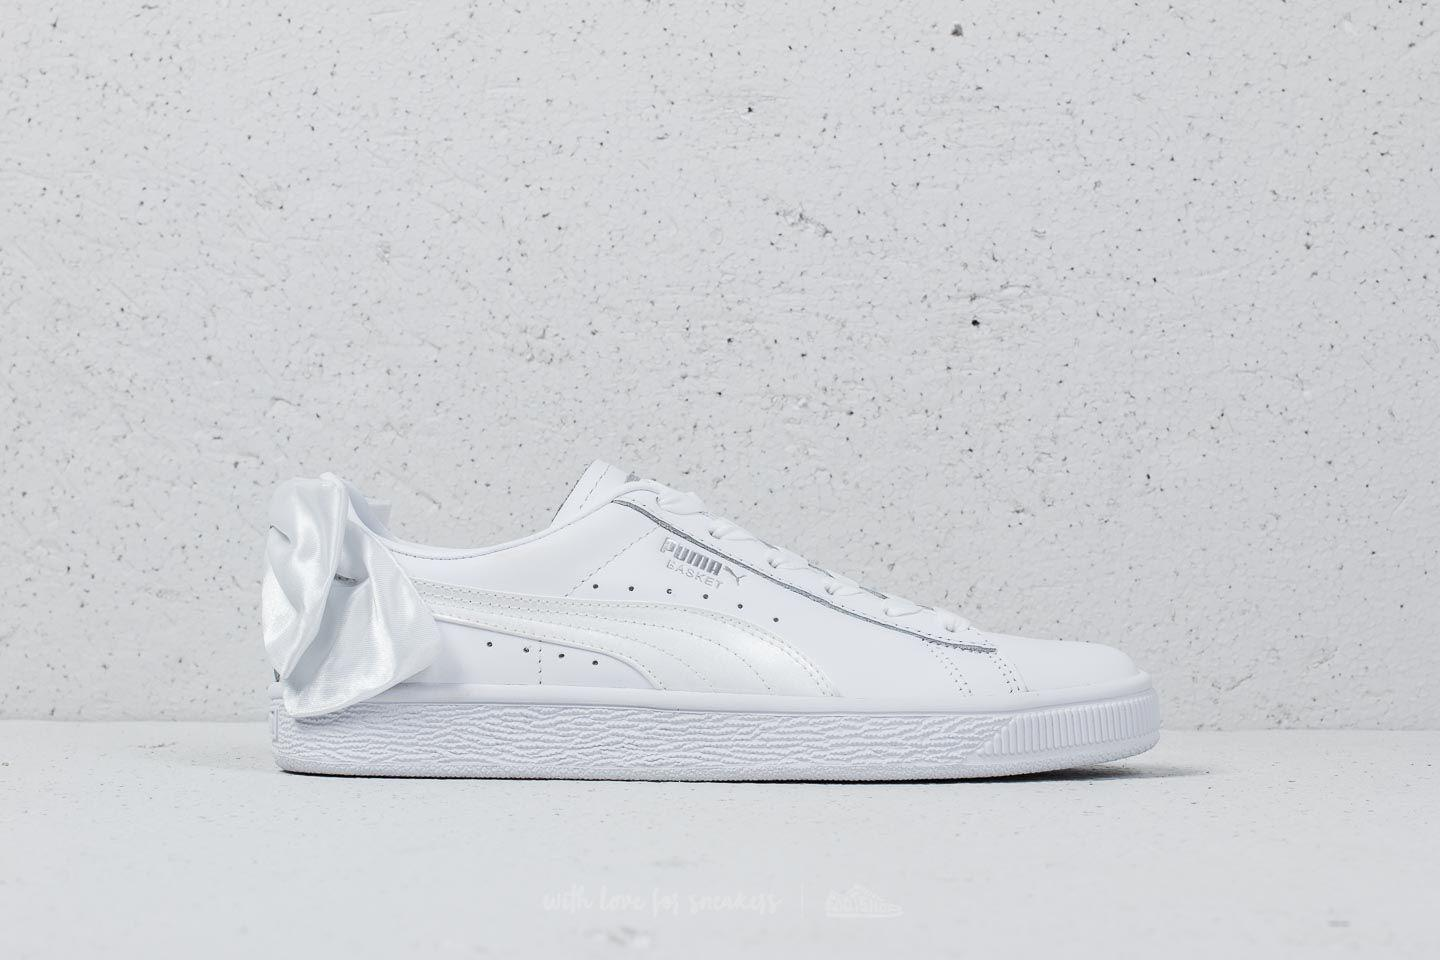 5d9161e67f9 PUMA Basket Bow Wn's White/ White in White - Lyst